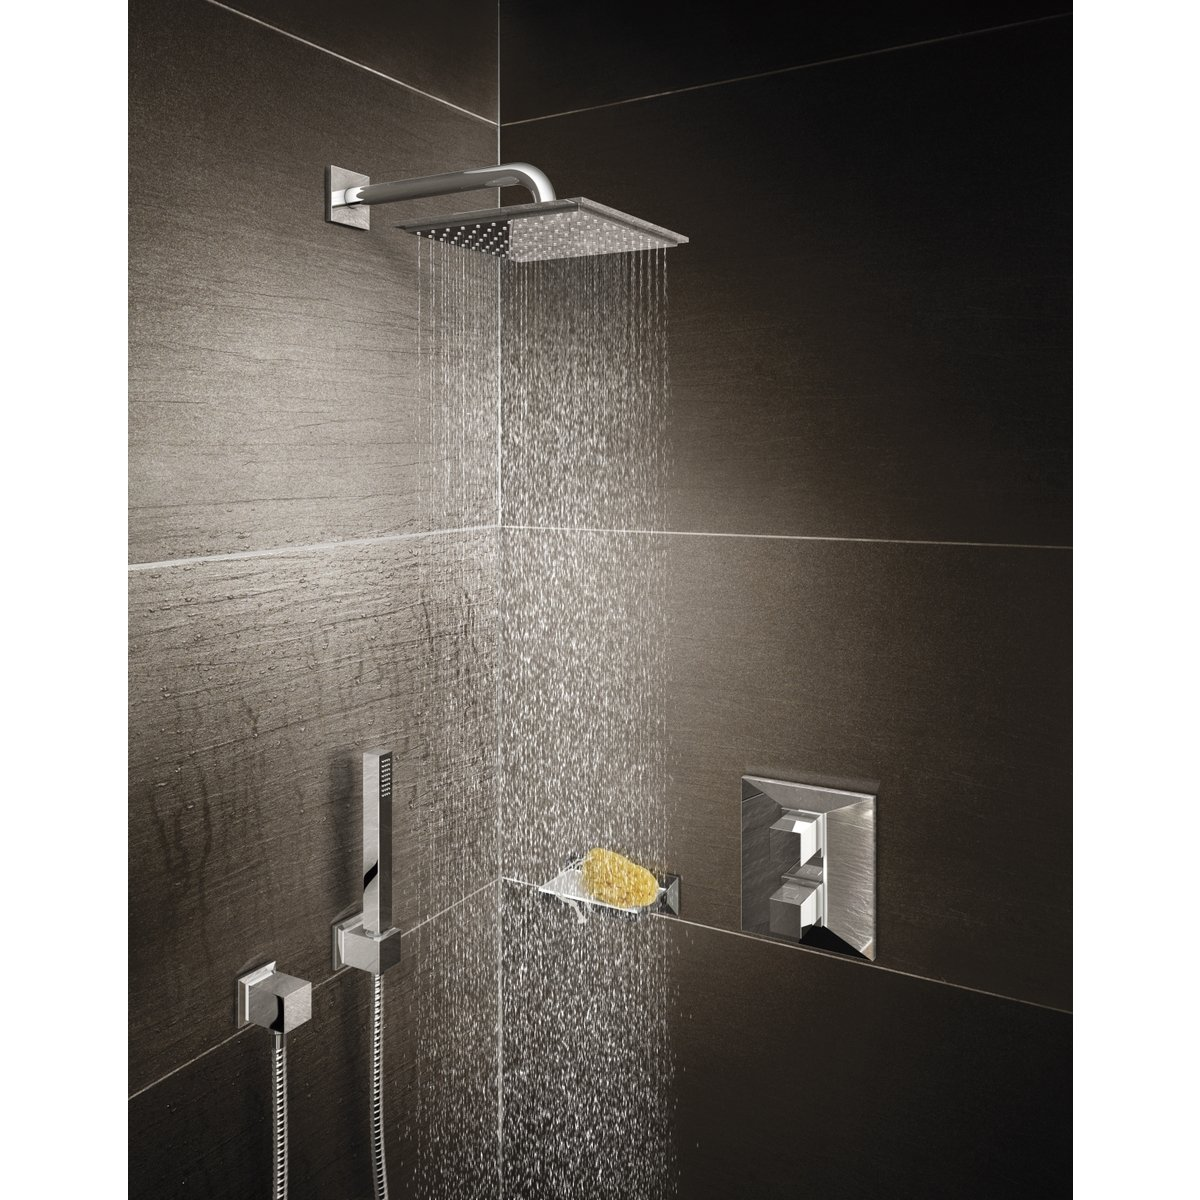 ciel de douche grohe gallery of lenceinte aquatunes rsulte de de philips et grohe grce with. Black Bedroom Furniture Sets. Home Design Ideas